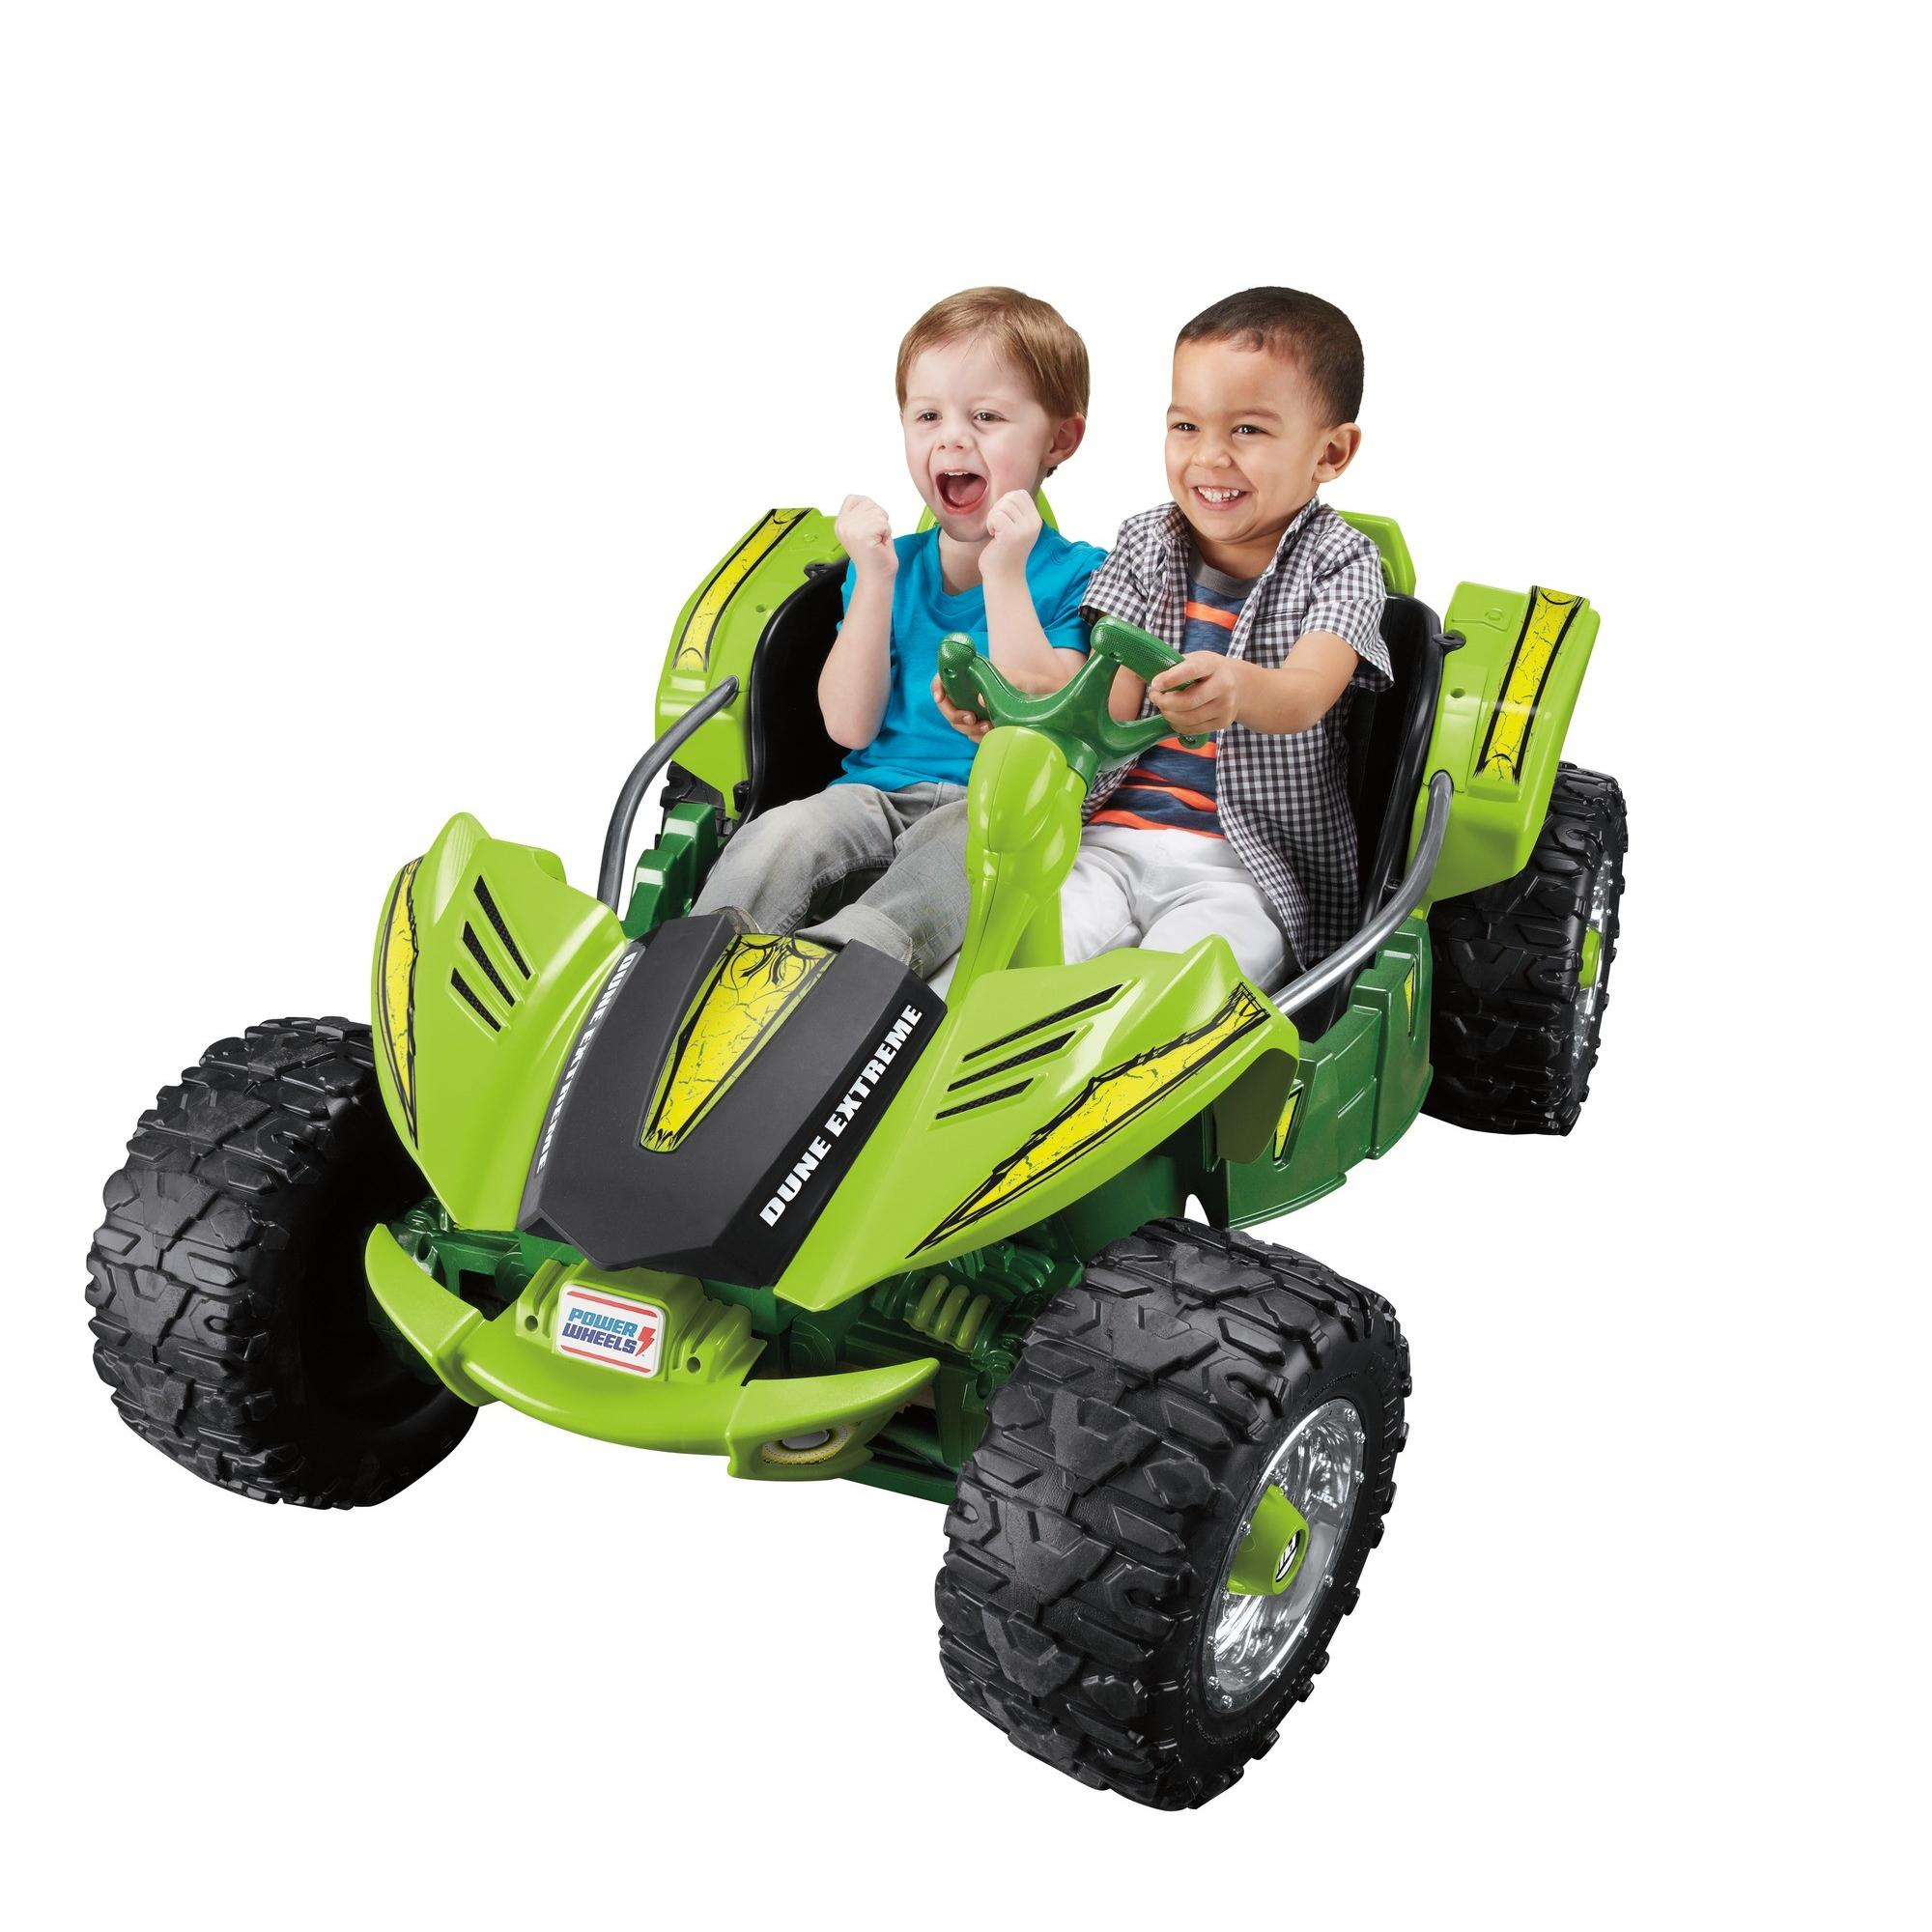 Kids Riding Toy Car 2 Seater Dune Racer Extreme Battery Ride Buggy